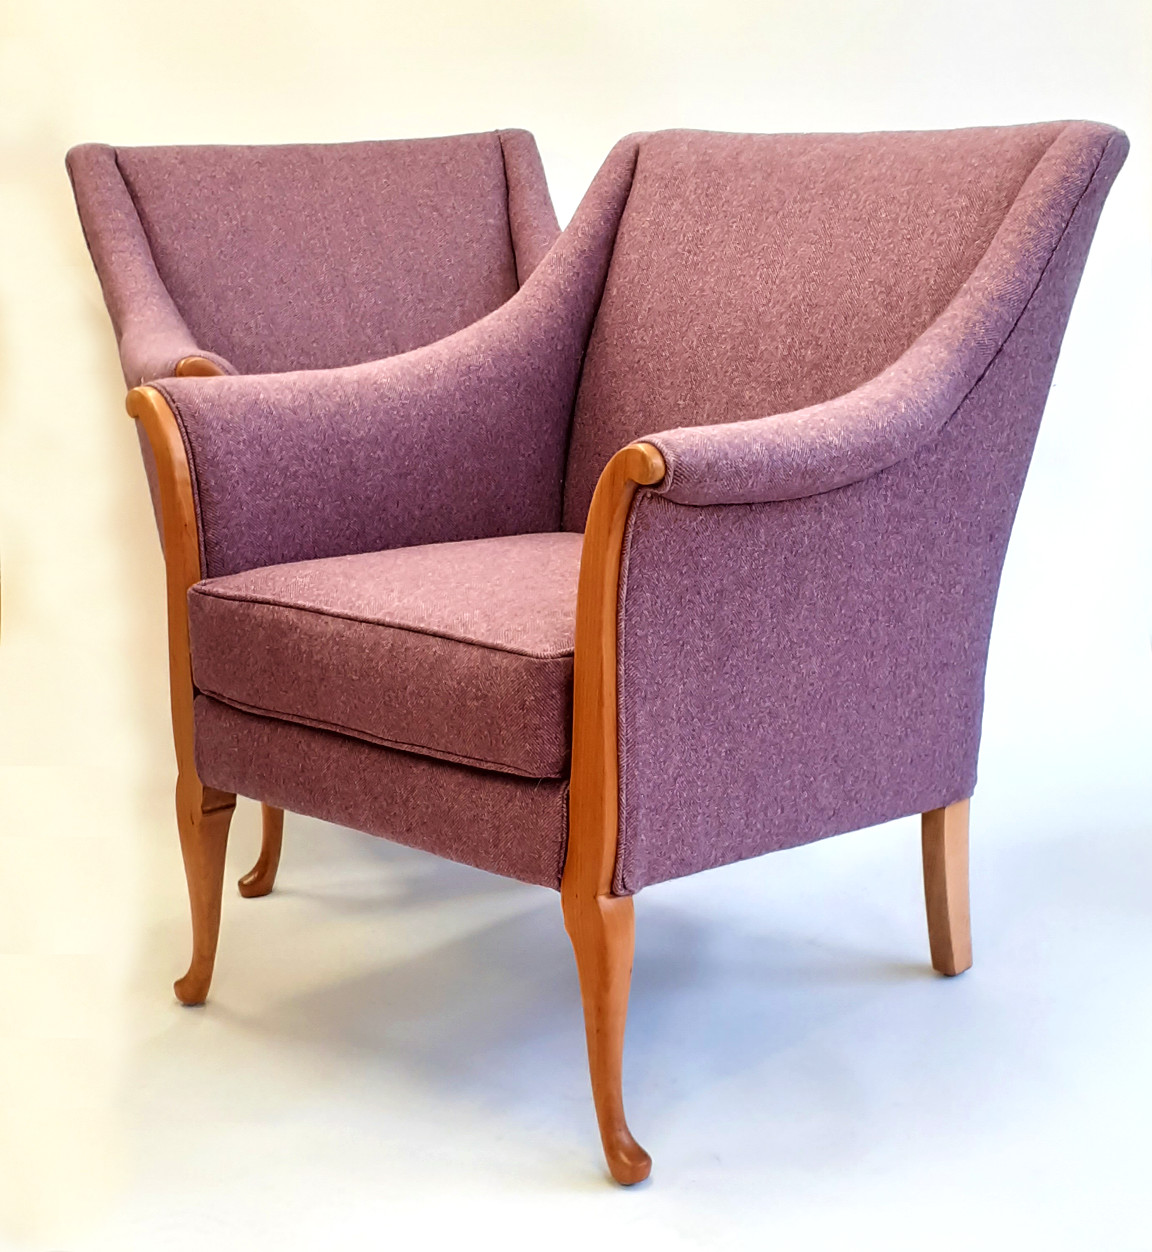 Pair of armchairs upholstered in 100% natural fibre with pure wool herringbone weave top fabric by Moon.